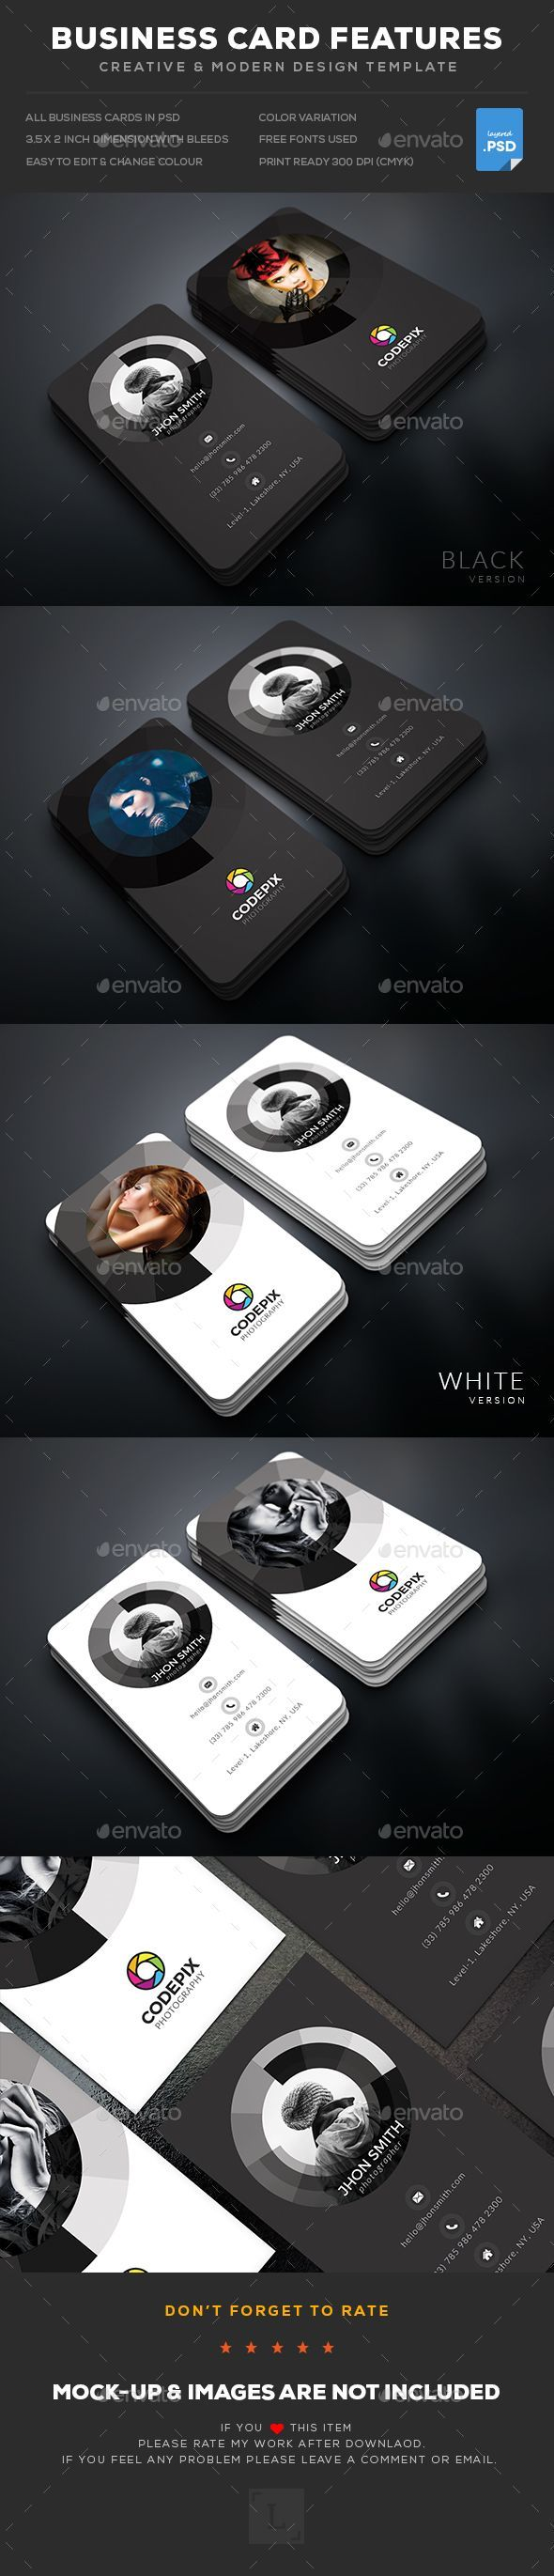 Photography Business Card - #Business #Cards Print Templates Download here: https://graphicriver.net/item/photography-business-card/19377123?ref=alena994